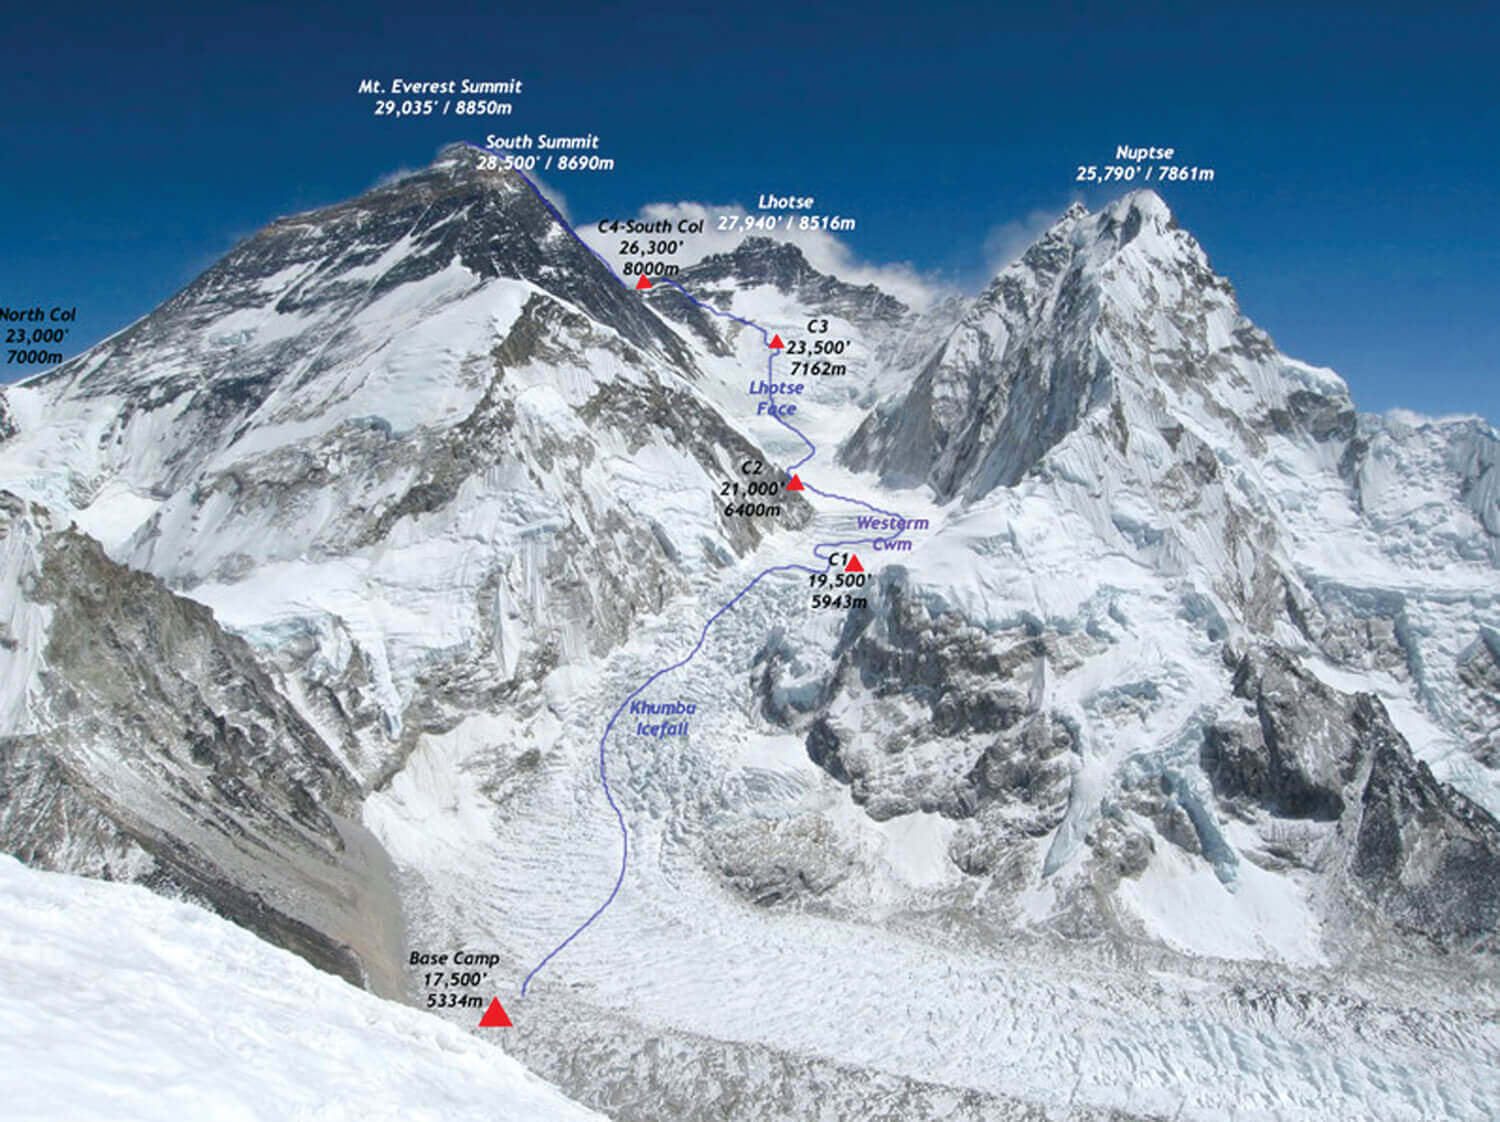 Everest oxygen failure accidents avoided